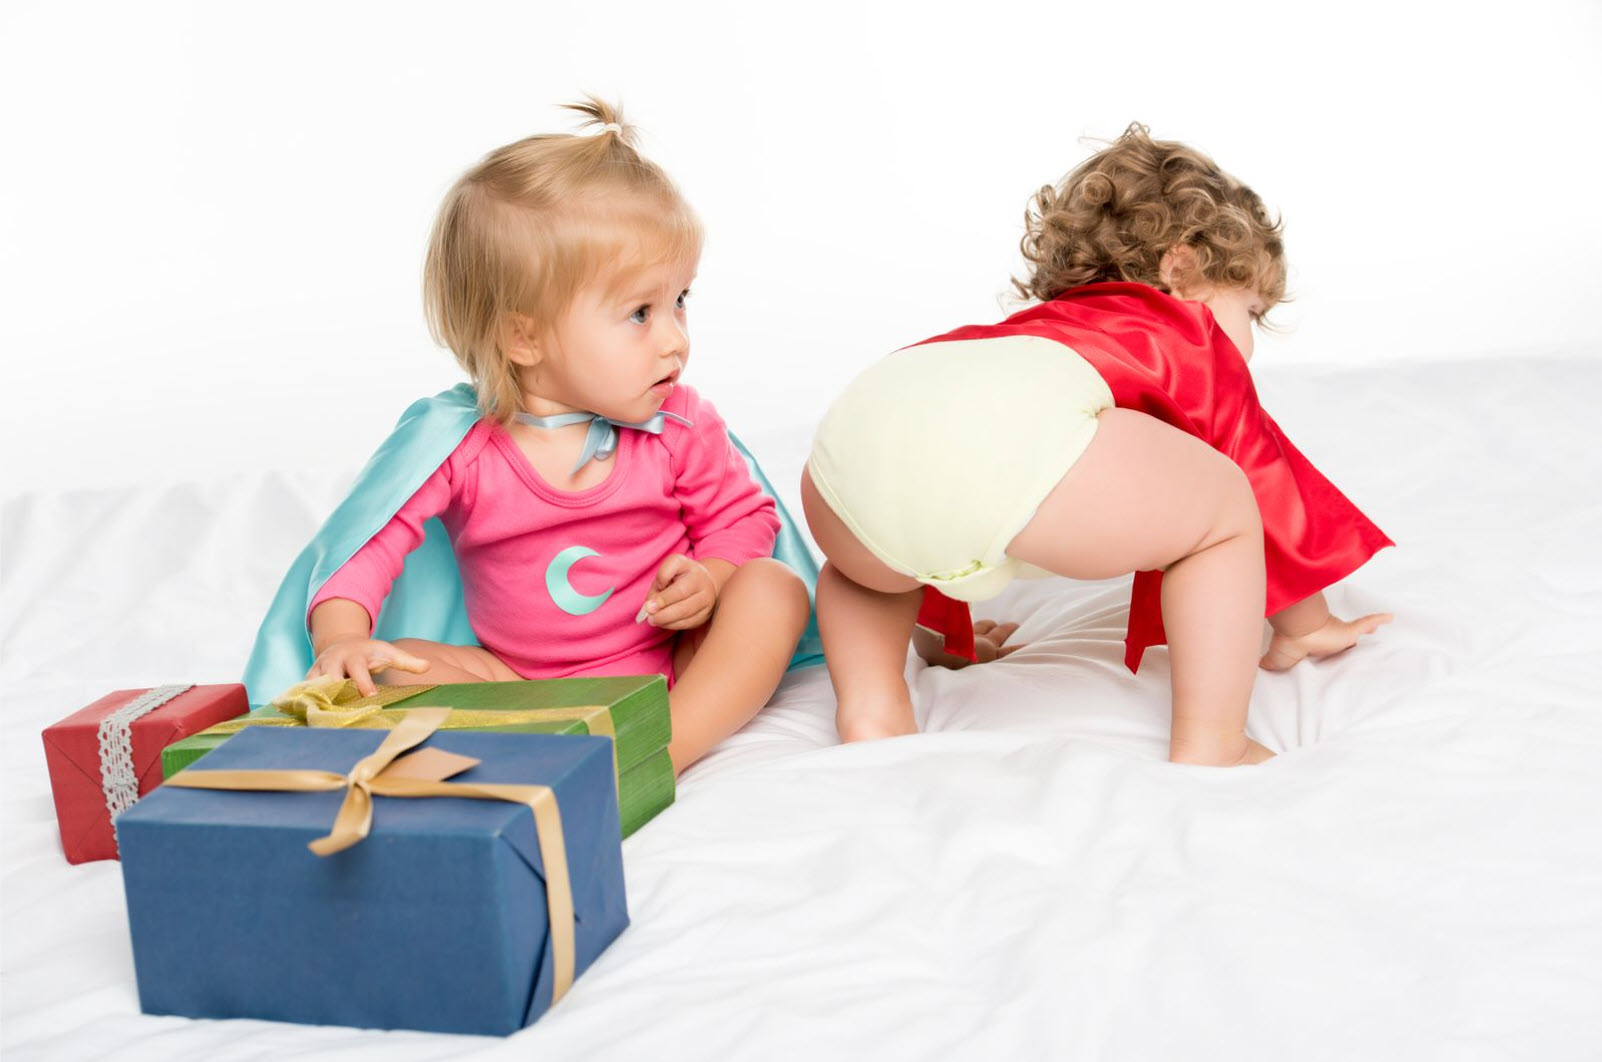 toddlers at the holidays with presents